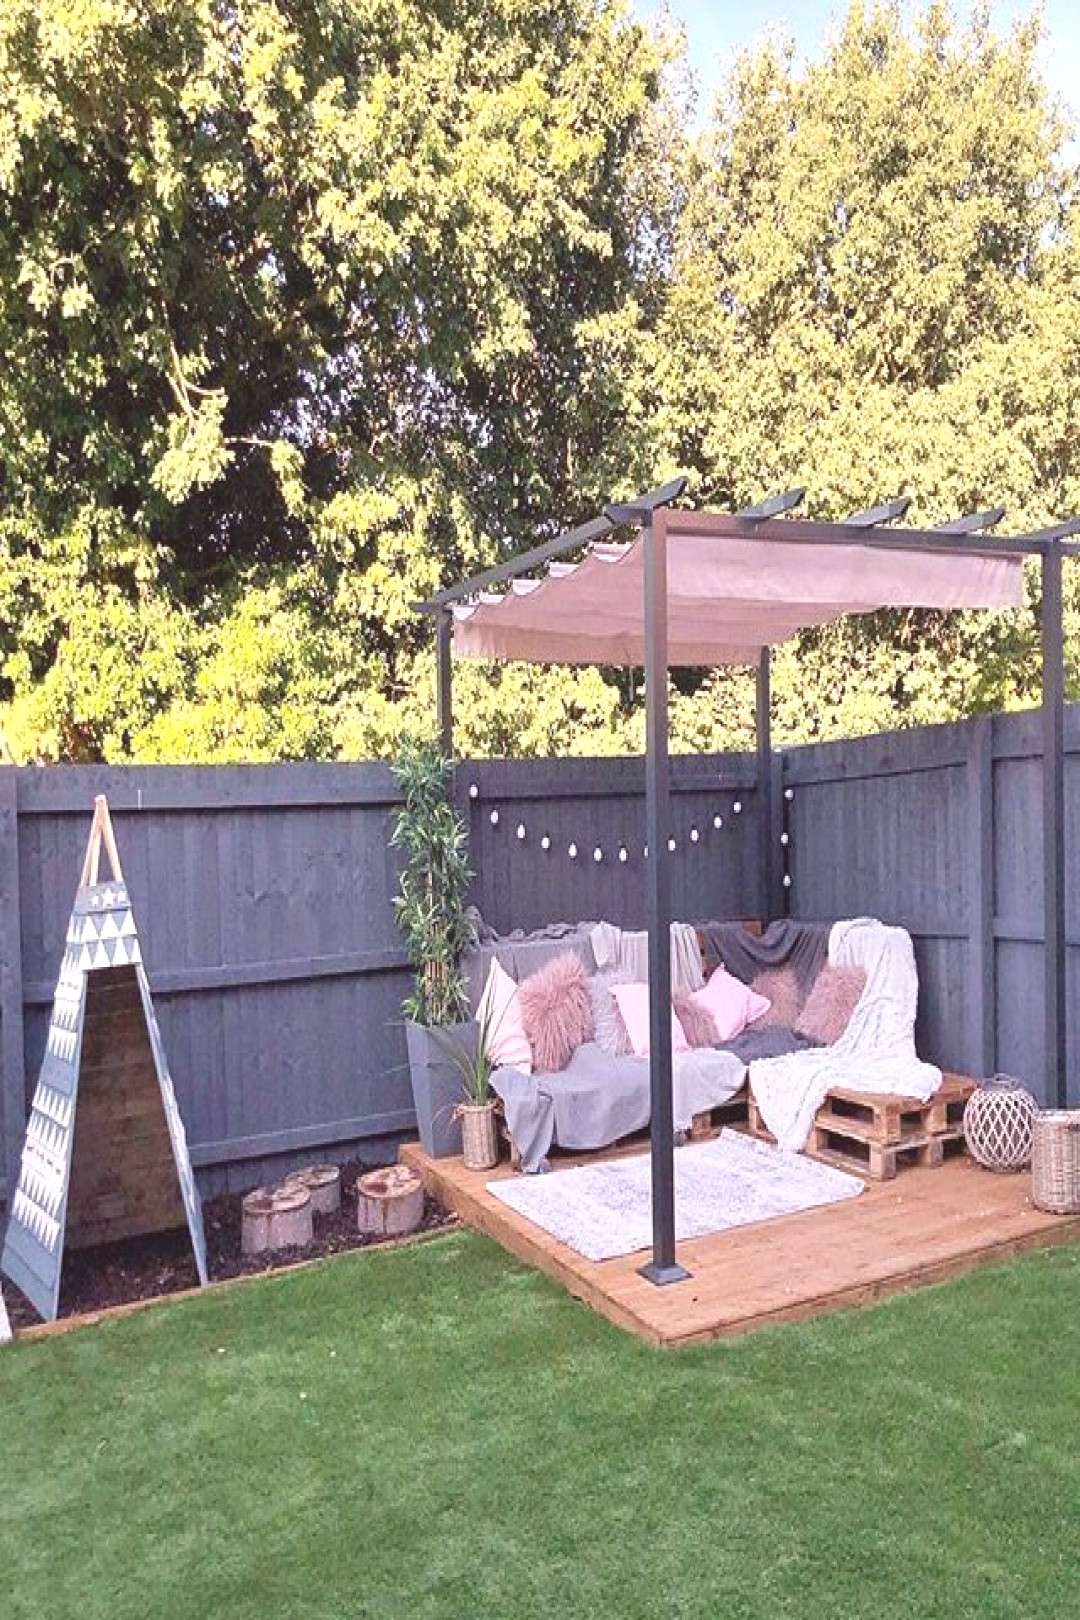 37 The best pergola ideas and styles around the world - ... -  37 The Best Pergola Ideas and Styles